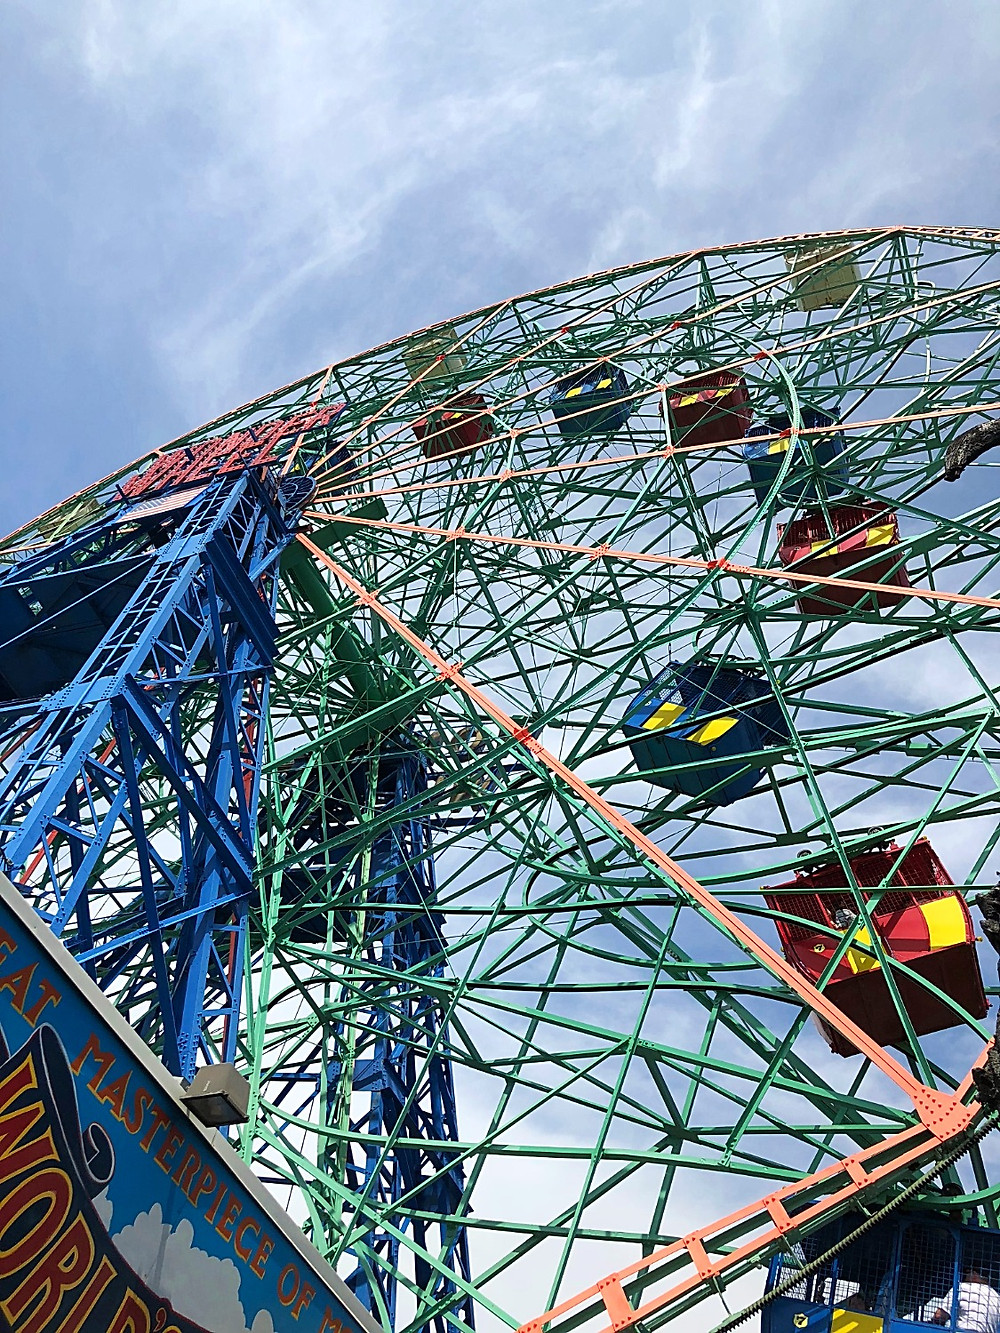 Coney Island, Wonder Wheel, Deno's Wonder Wheel Amusement Park, Coney Island with kids, Amusement Park with kids, kiddie rides, ferris wheel with kids, carnival games, Brooklyn with kids, ferris wheel from below